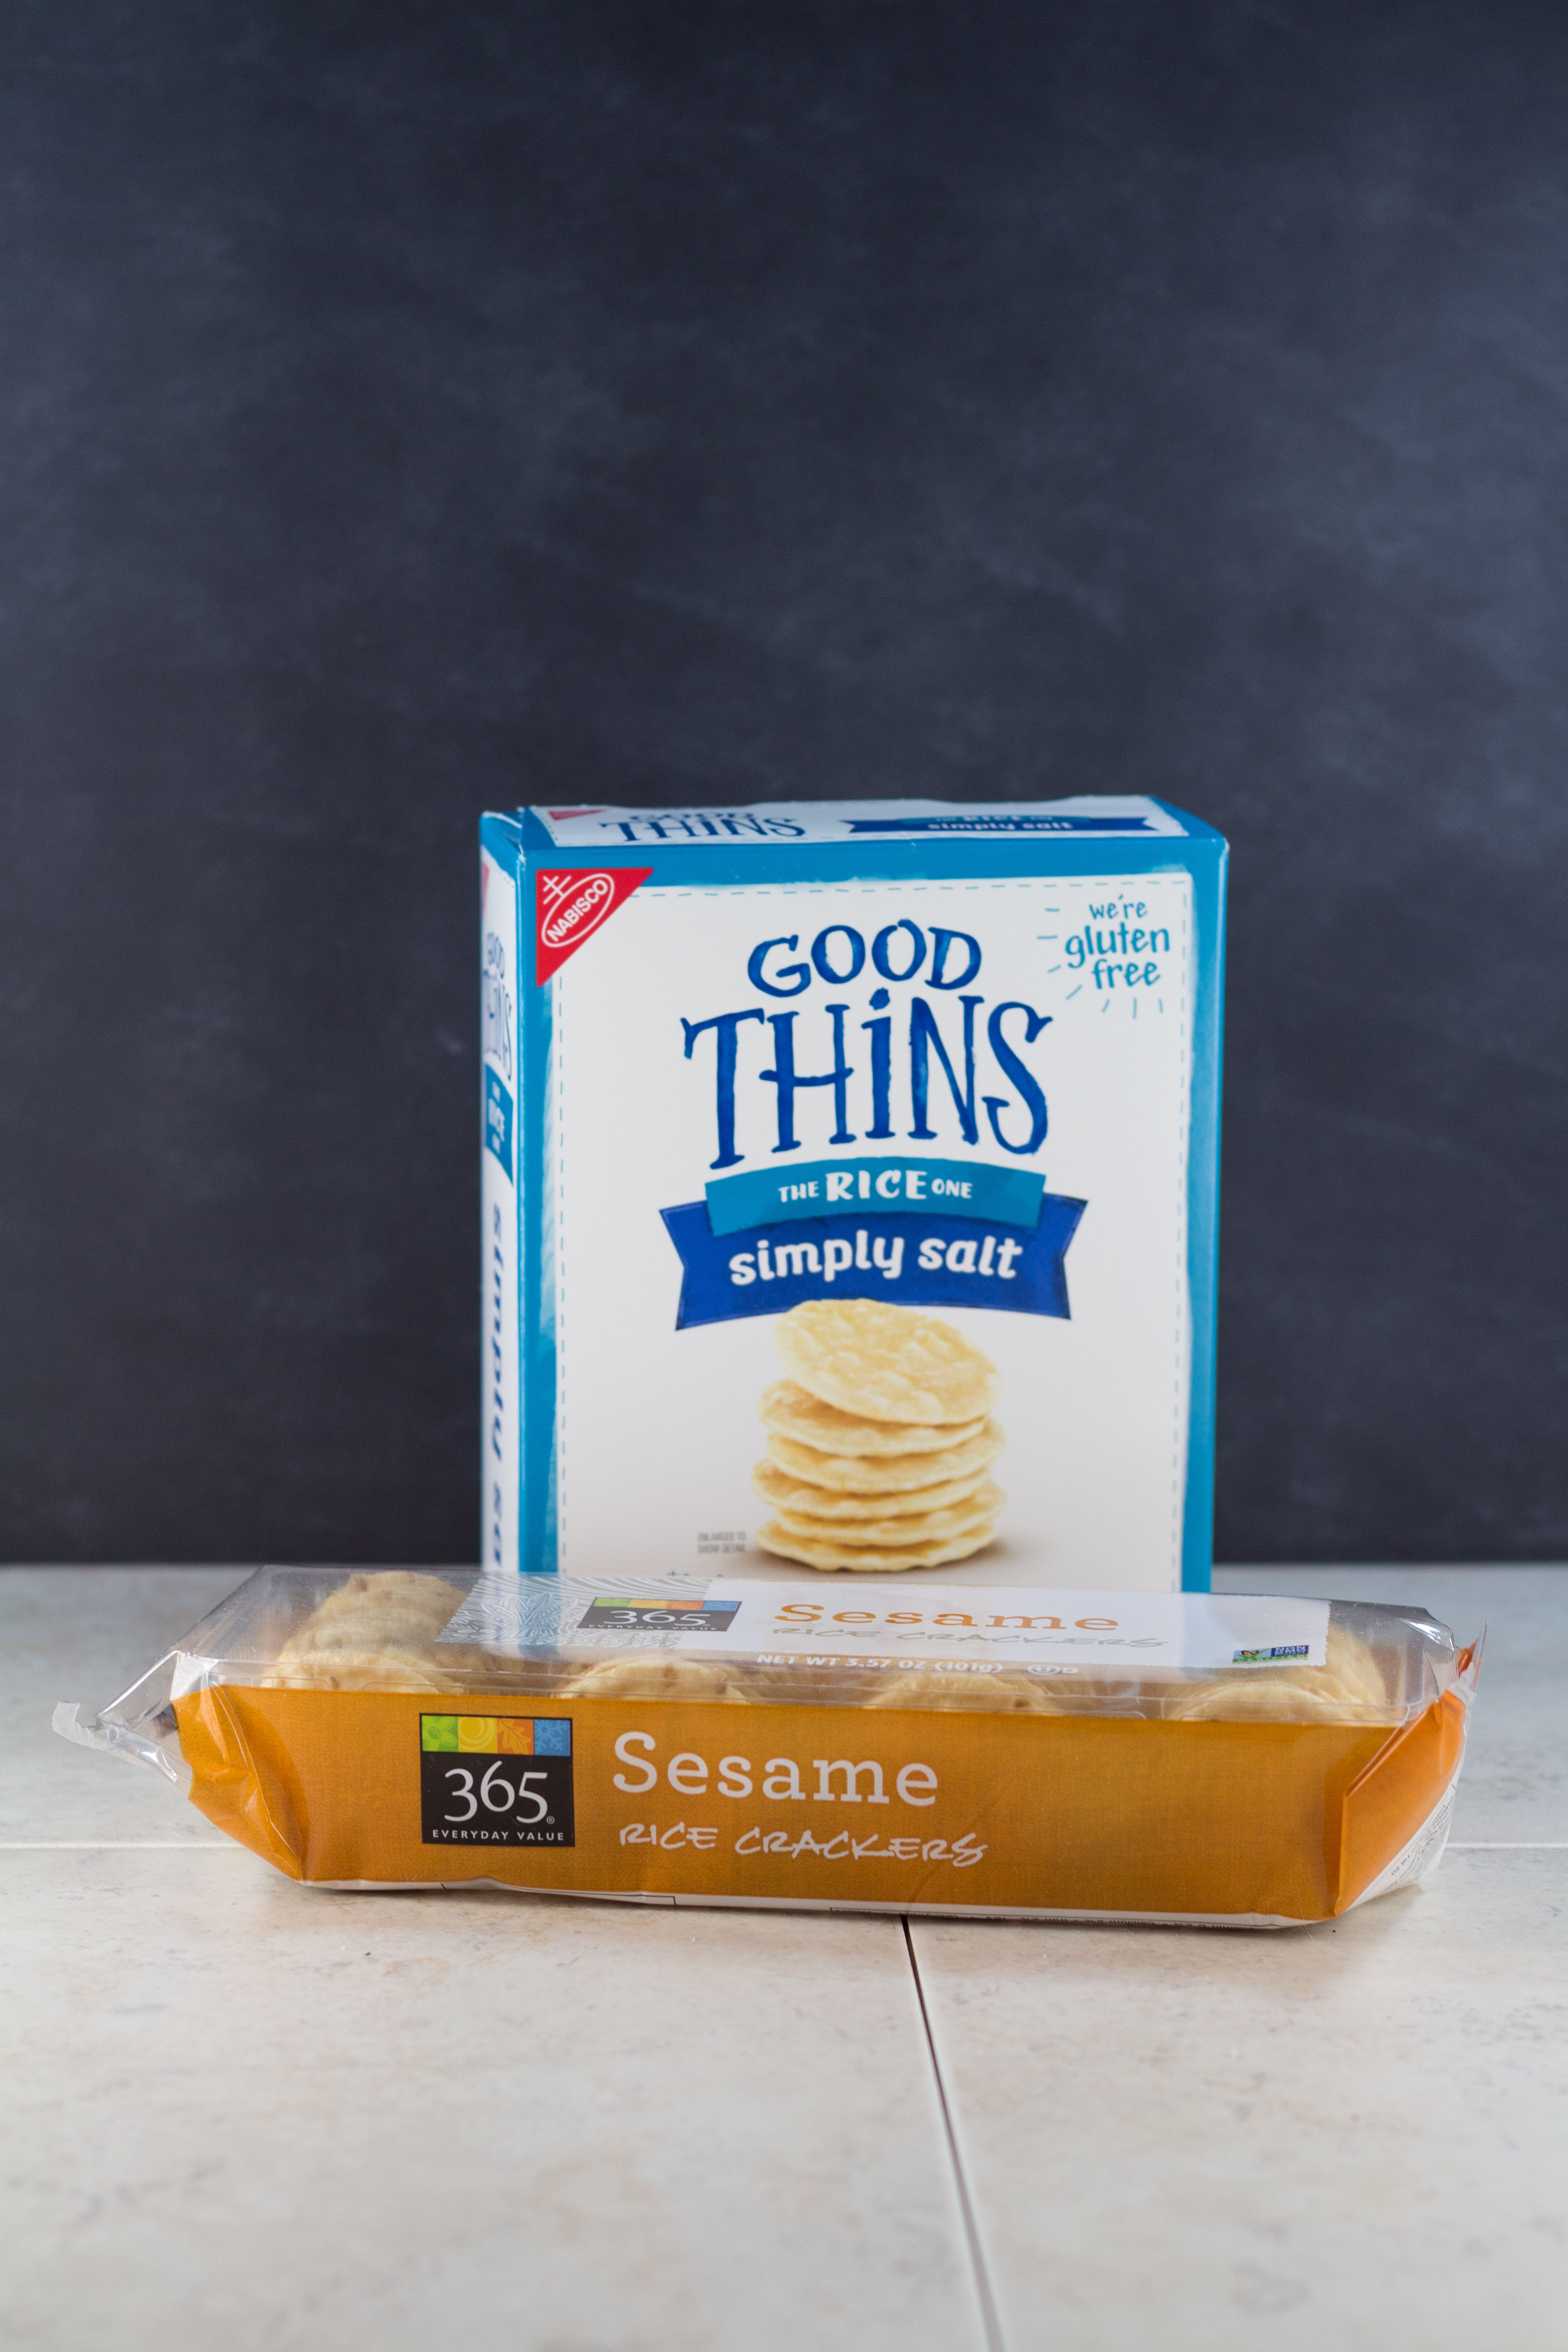 Gluten-free sesame rice crackers are perfect for dipping in hummus. | https://www.roseclearfield.com